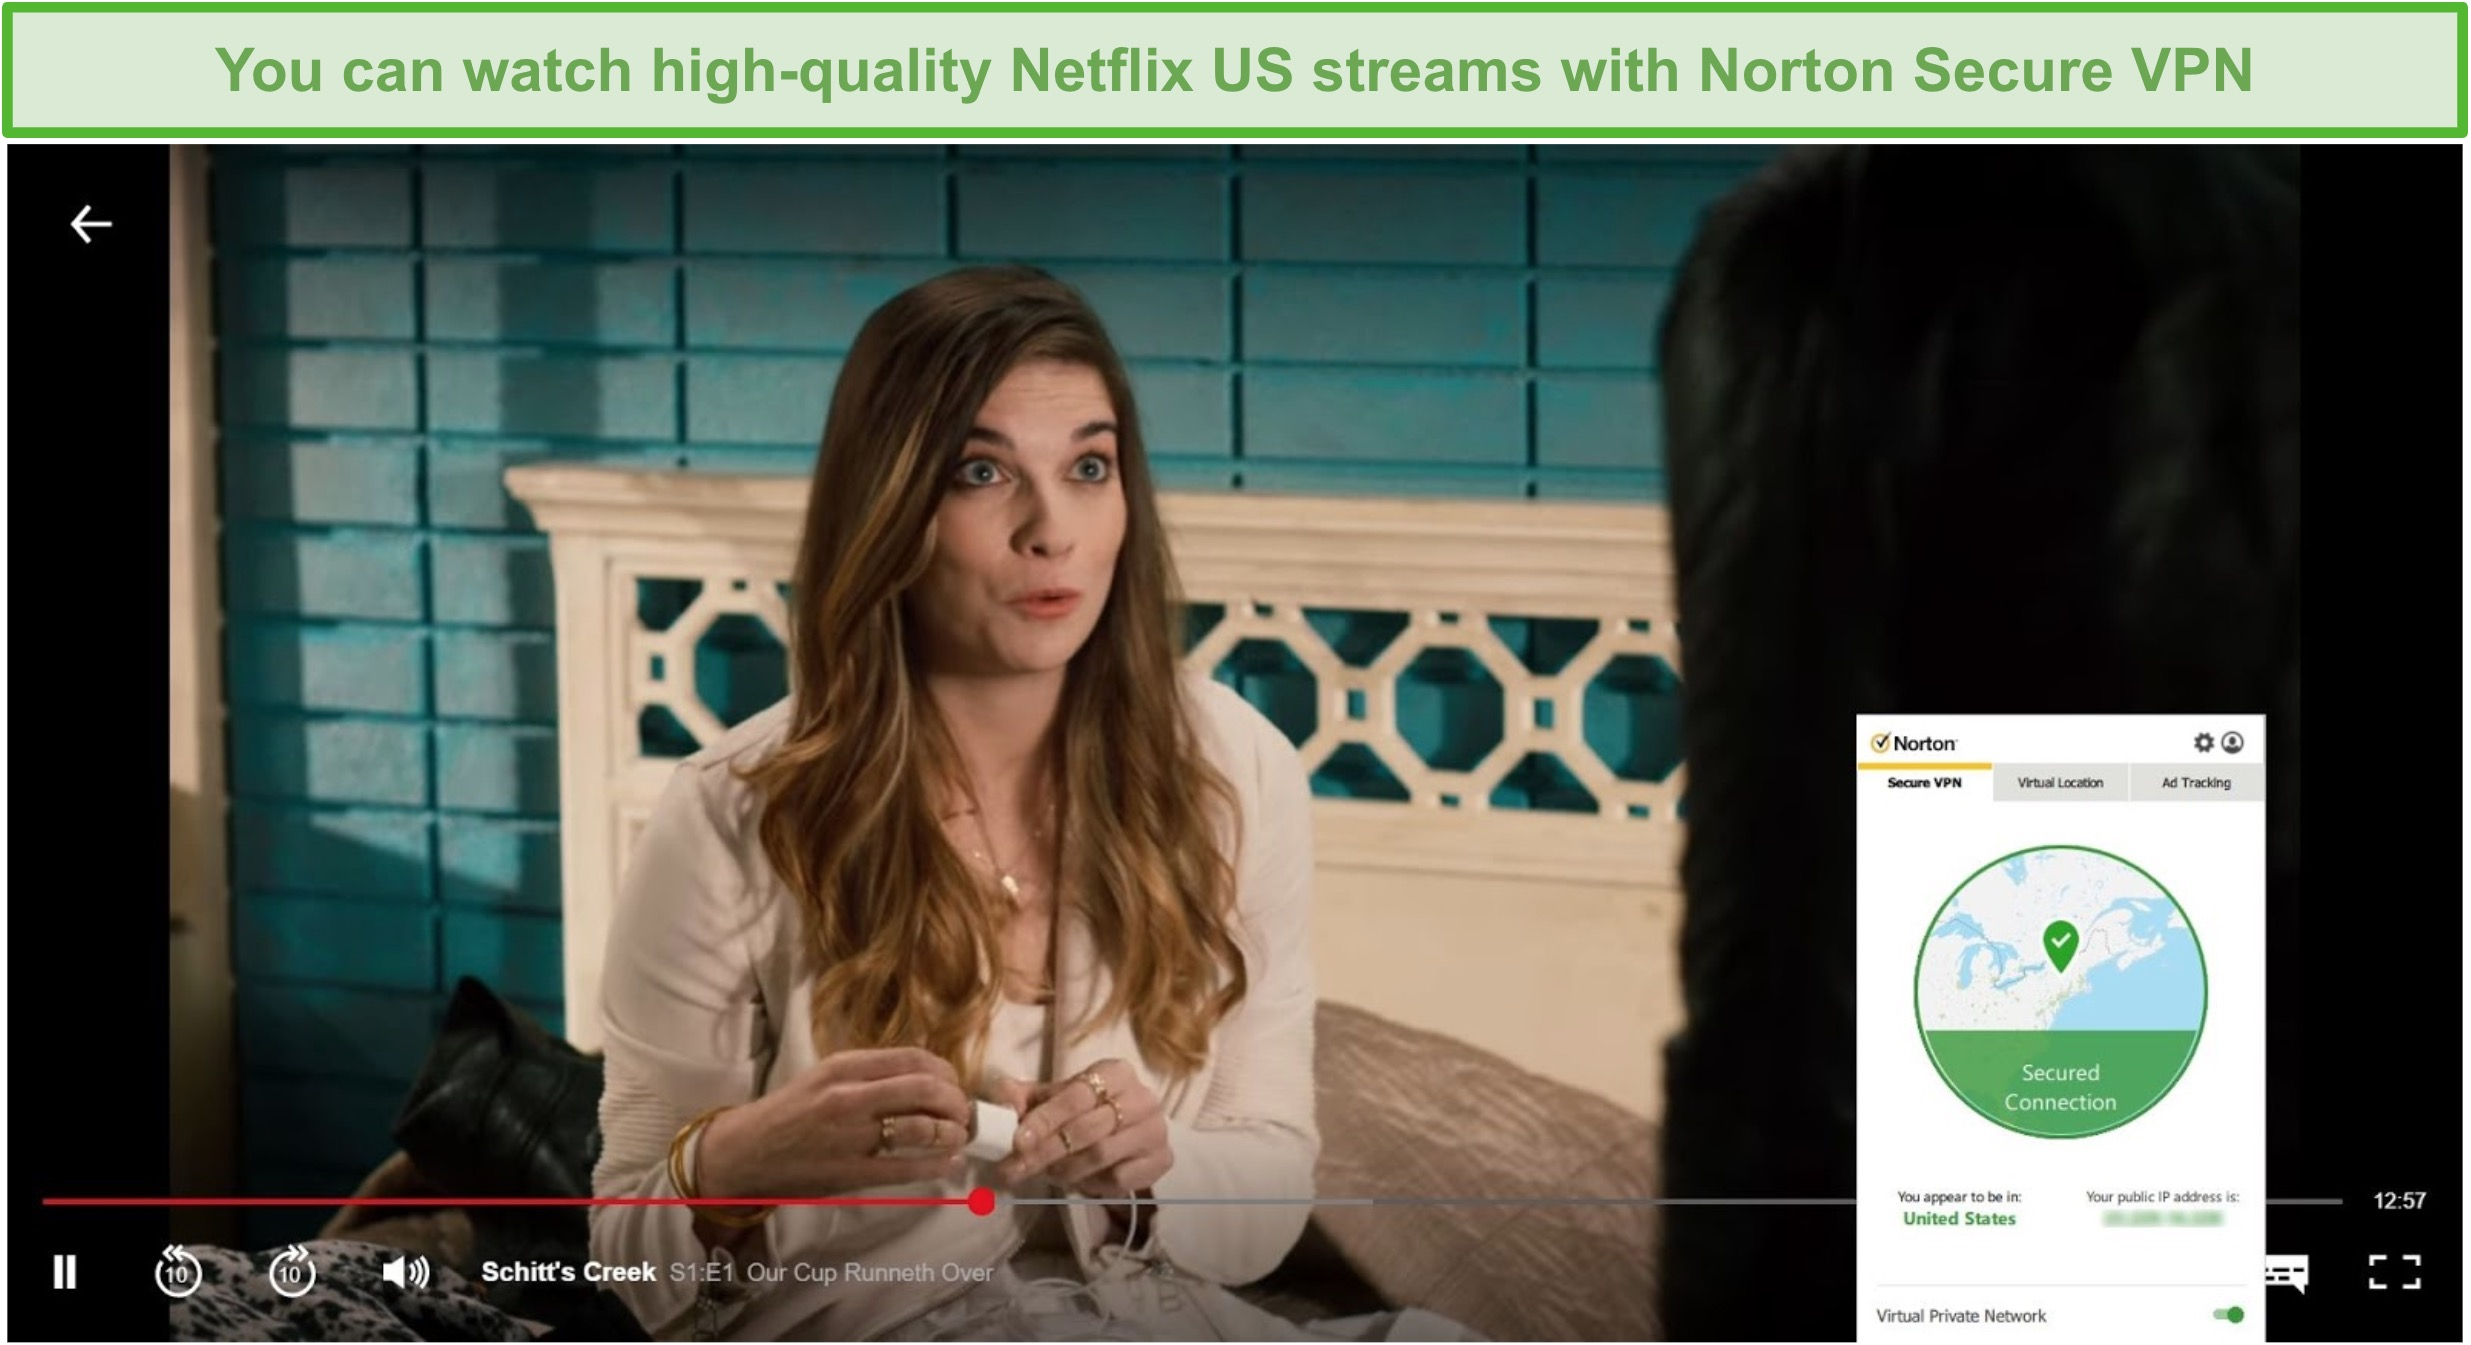 Screenshot of Norton Secure VPN unblocking Netflix US and streaming Schitt's Creek.